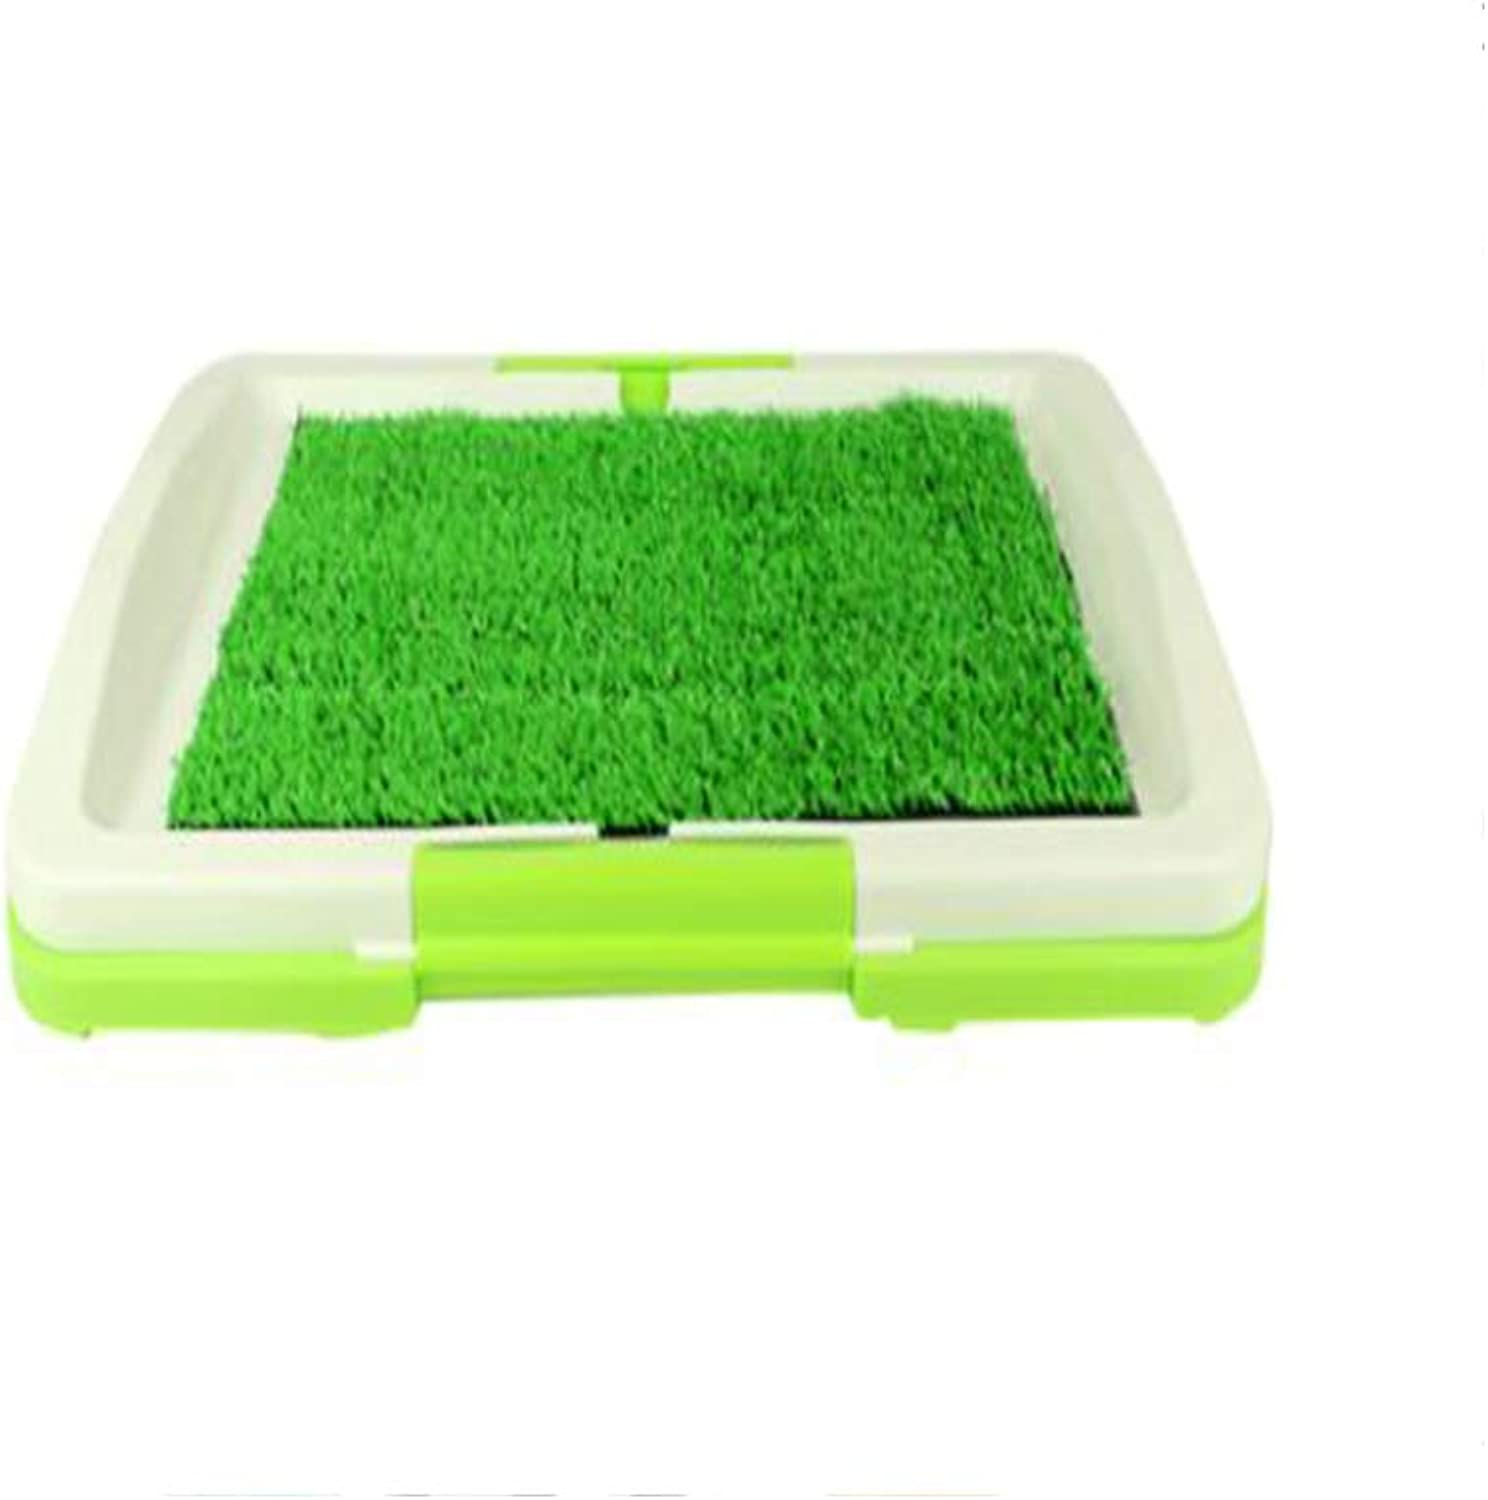 North cool Lawn Pet Cat Dog Toilet, Pet Potty Urinal Large and Medium Dog Toilet4734  5.5cm